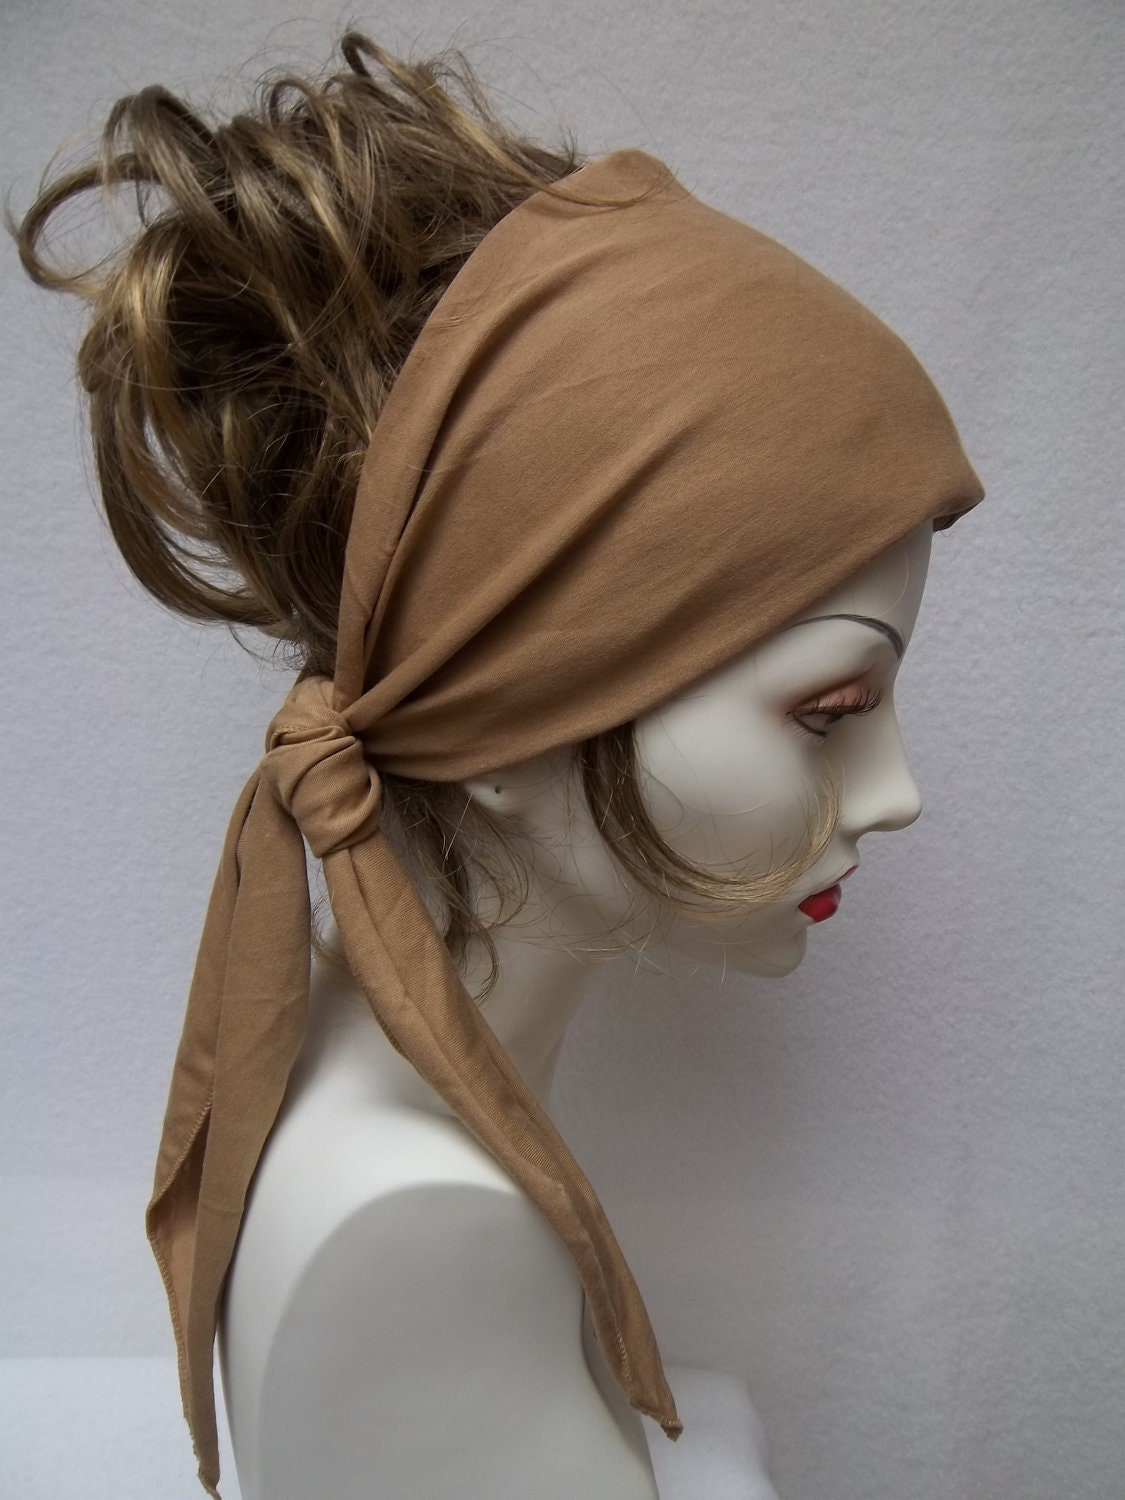 how to train your hair to wrap